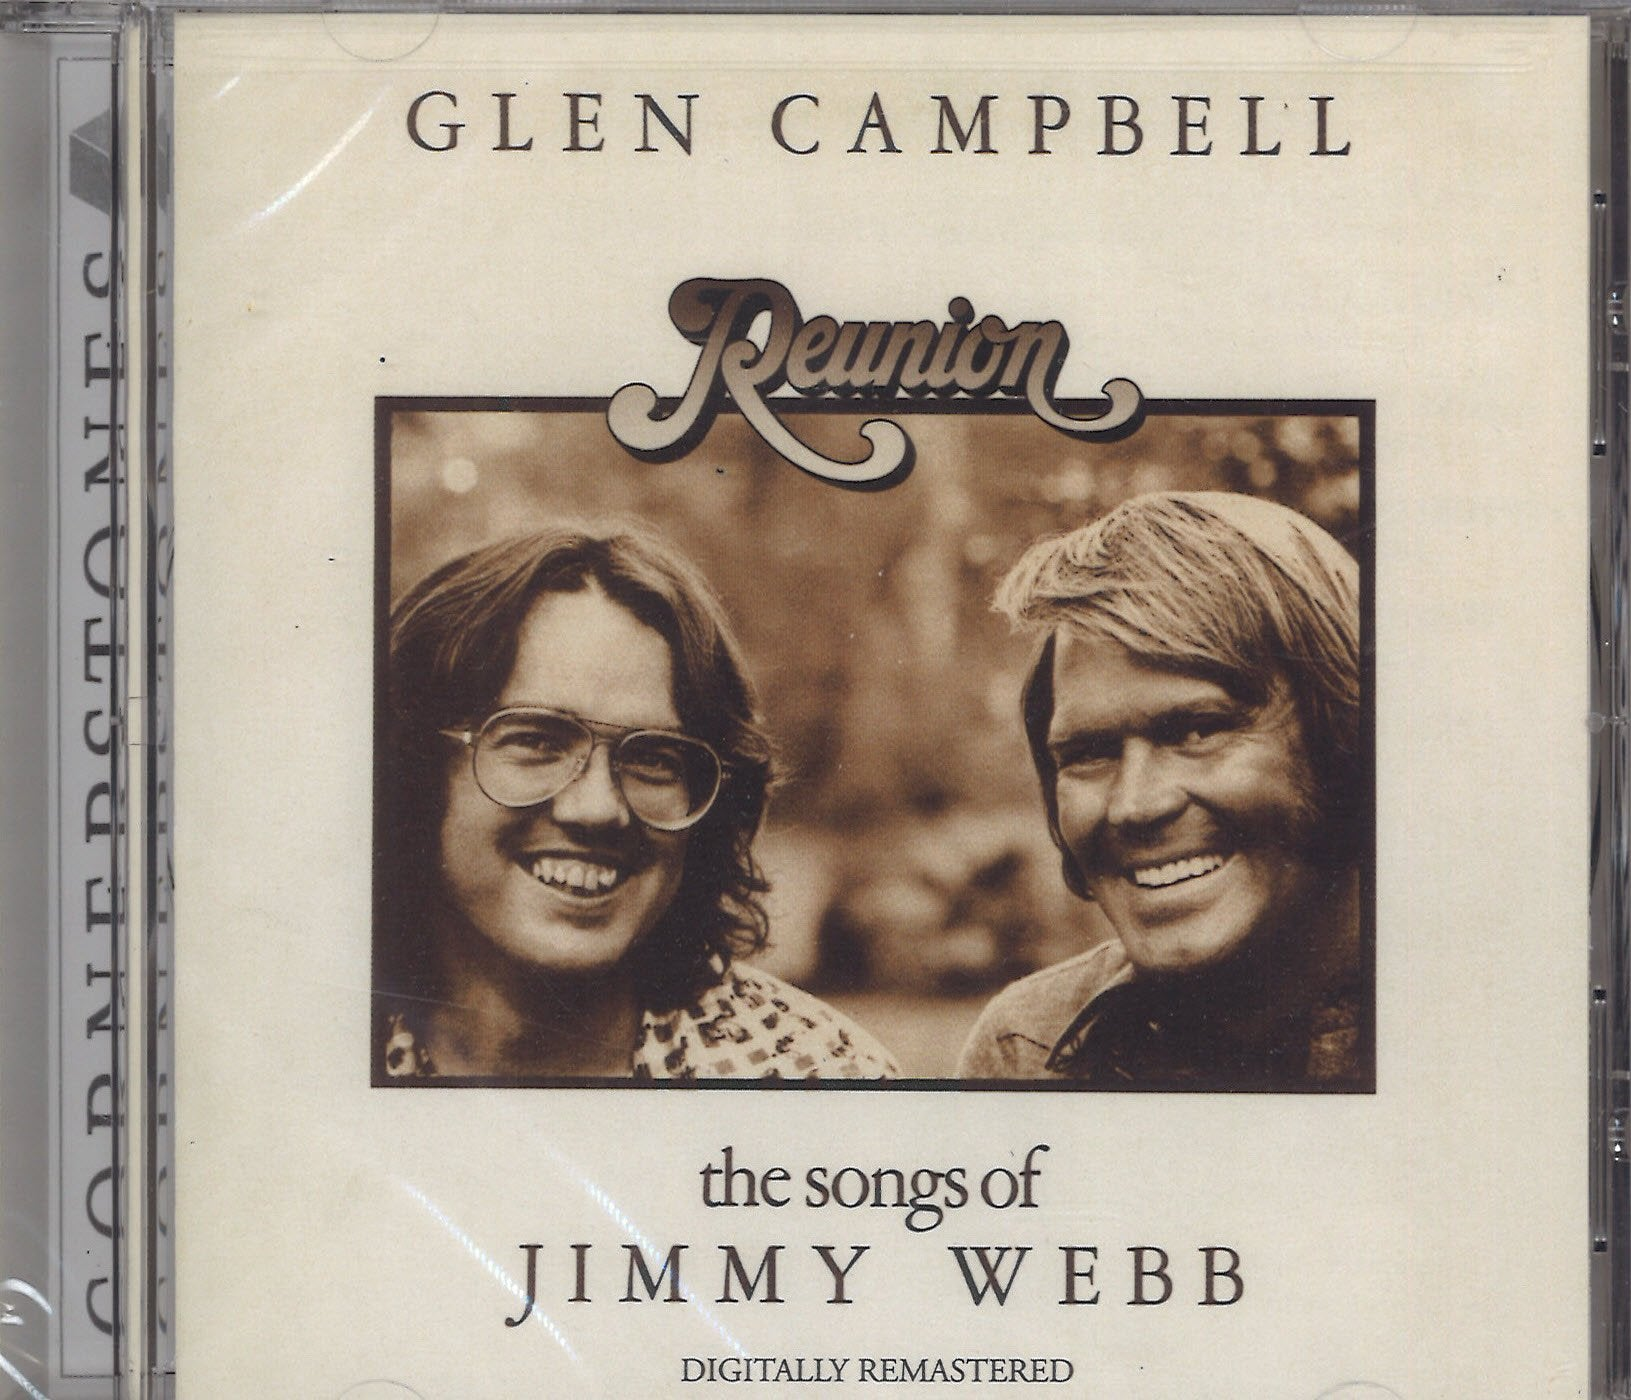 Glen Campbell Reunion - The Songs Of Jimmy Webb